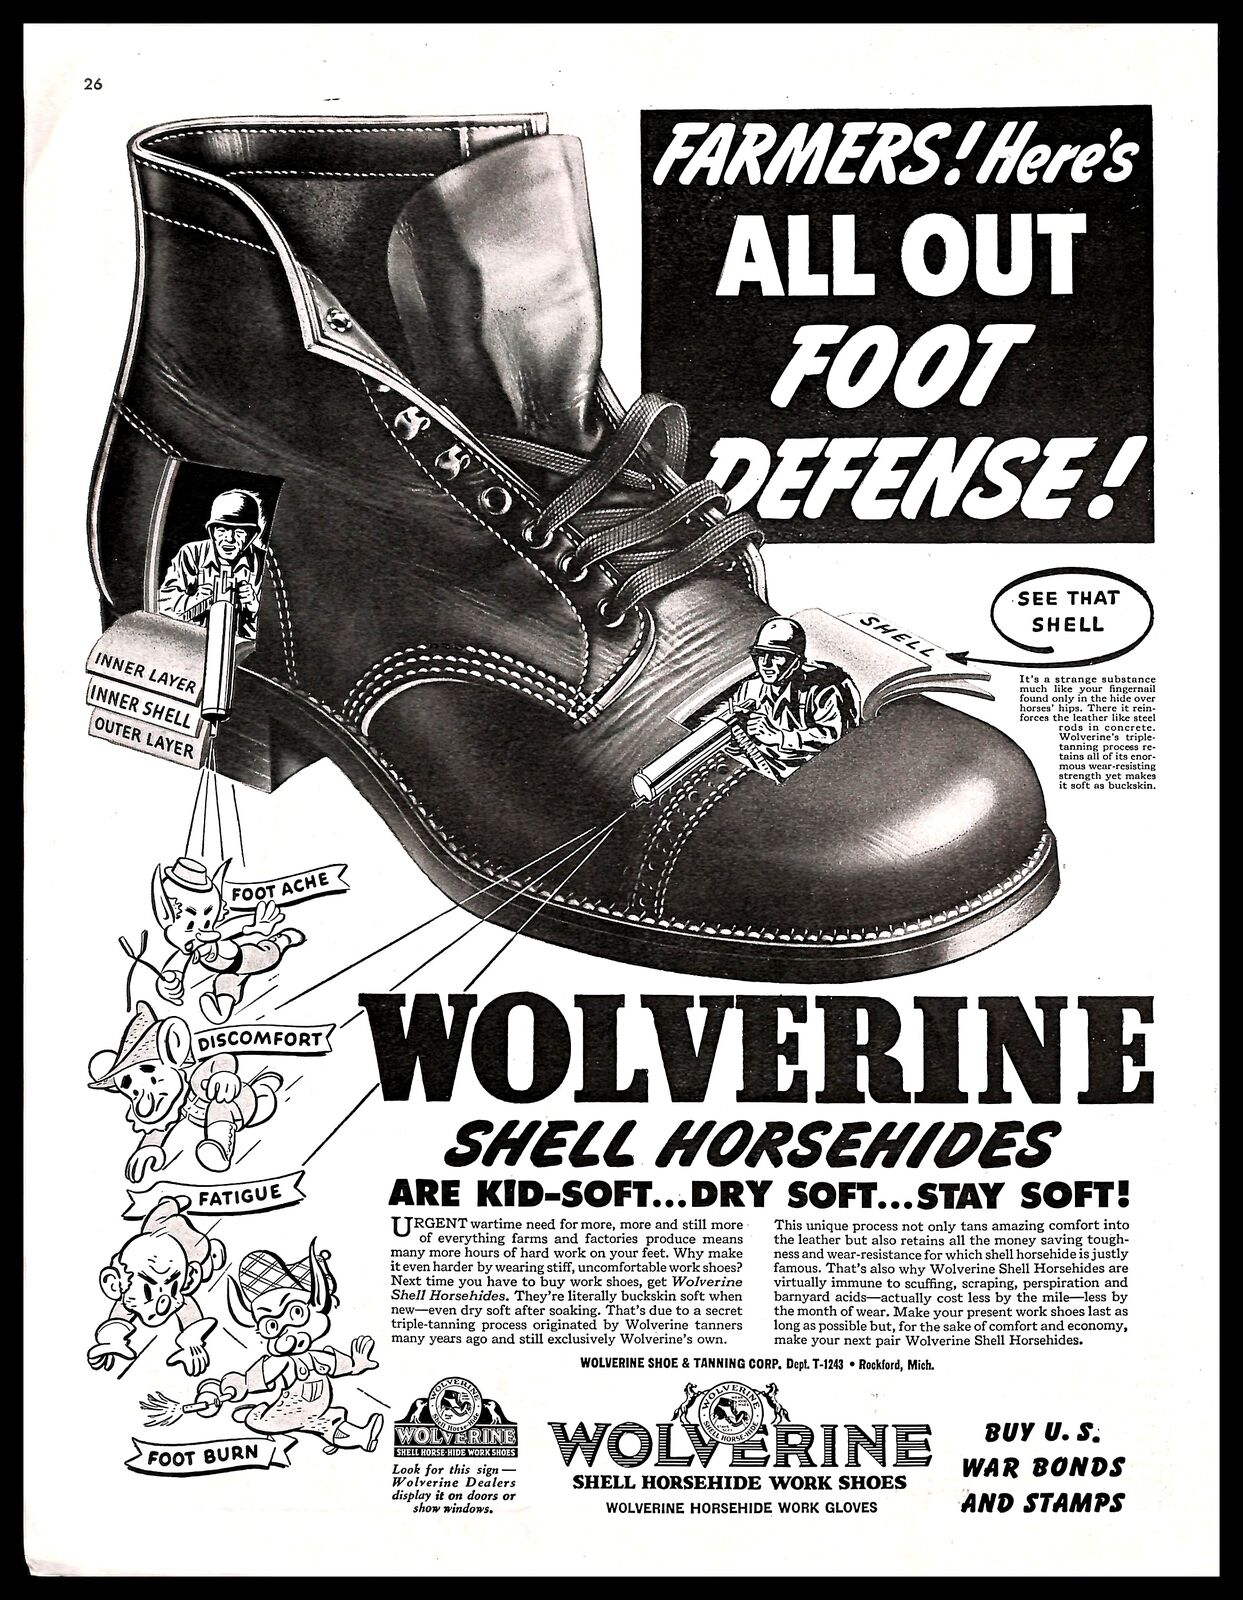 81244e492a2 Details about 1943 Wolverine Shell Horsehides Vintage PRINT AD Farmers  Boots WWII War Bonds